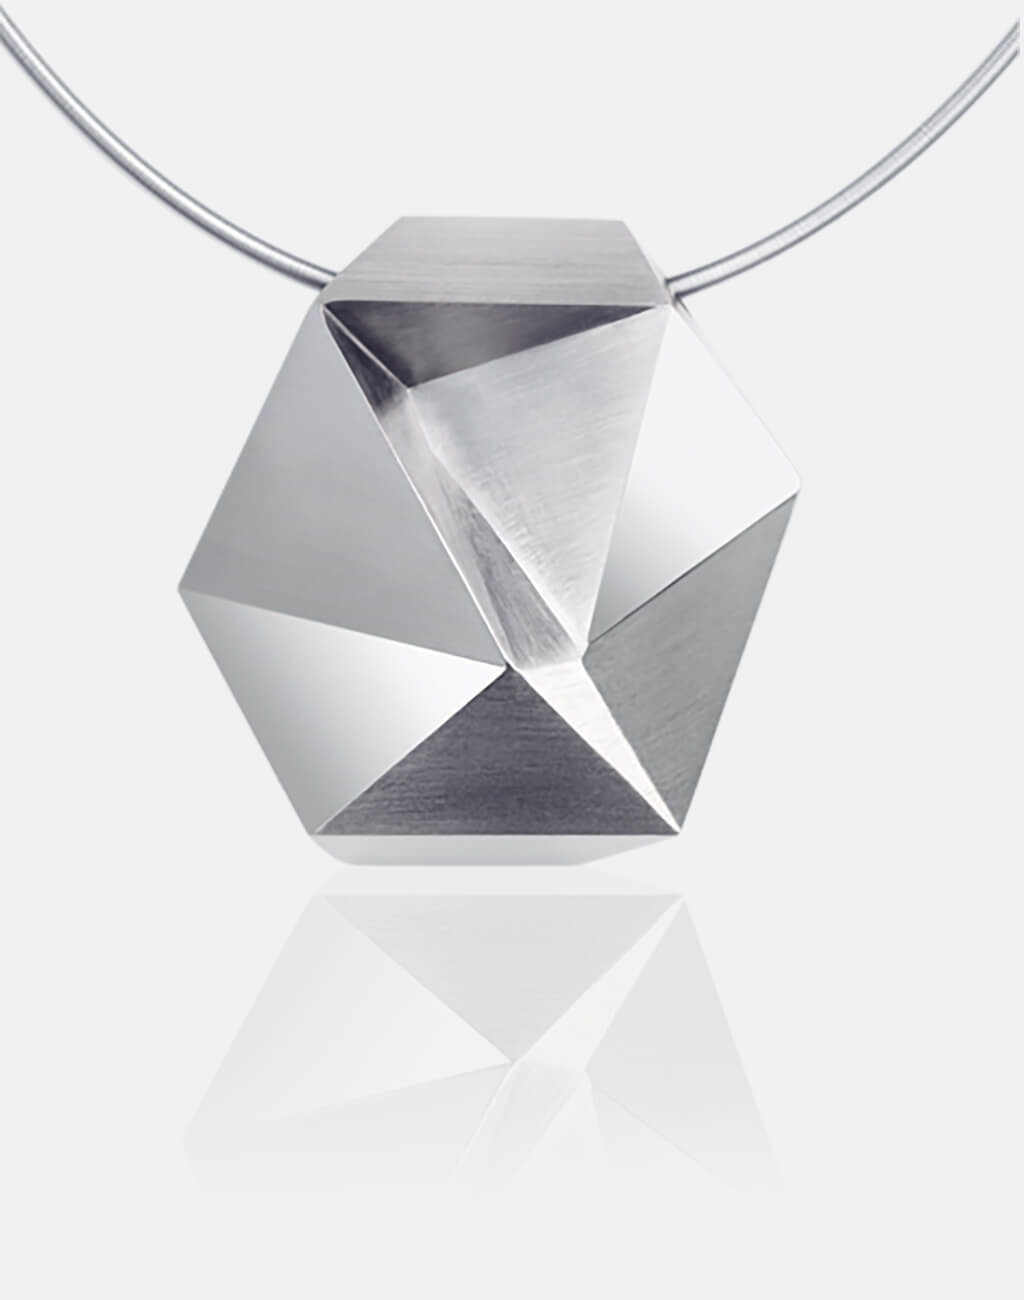 Tectone | Collier, Kettenanhänger, Kette 750/- Weissgold | necklace, pendant 18kt white gold | SYNO-Schmuck.com